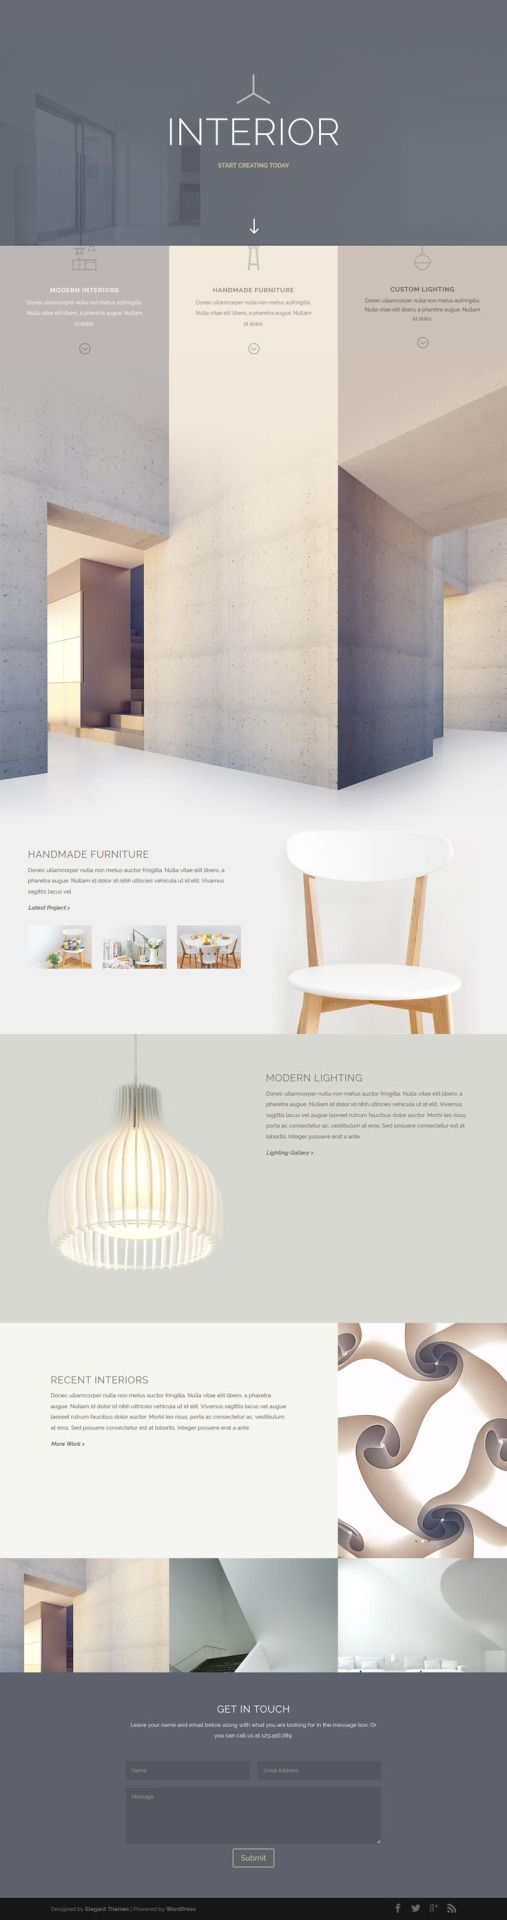 286 best web design images on Pinterest | Design websites, Web ...